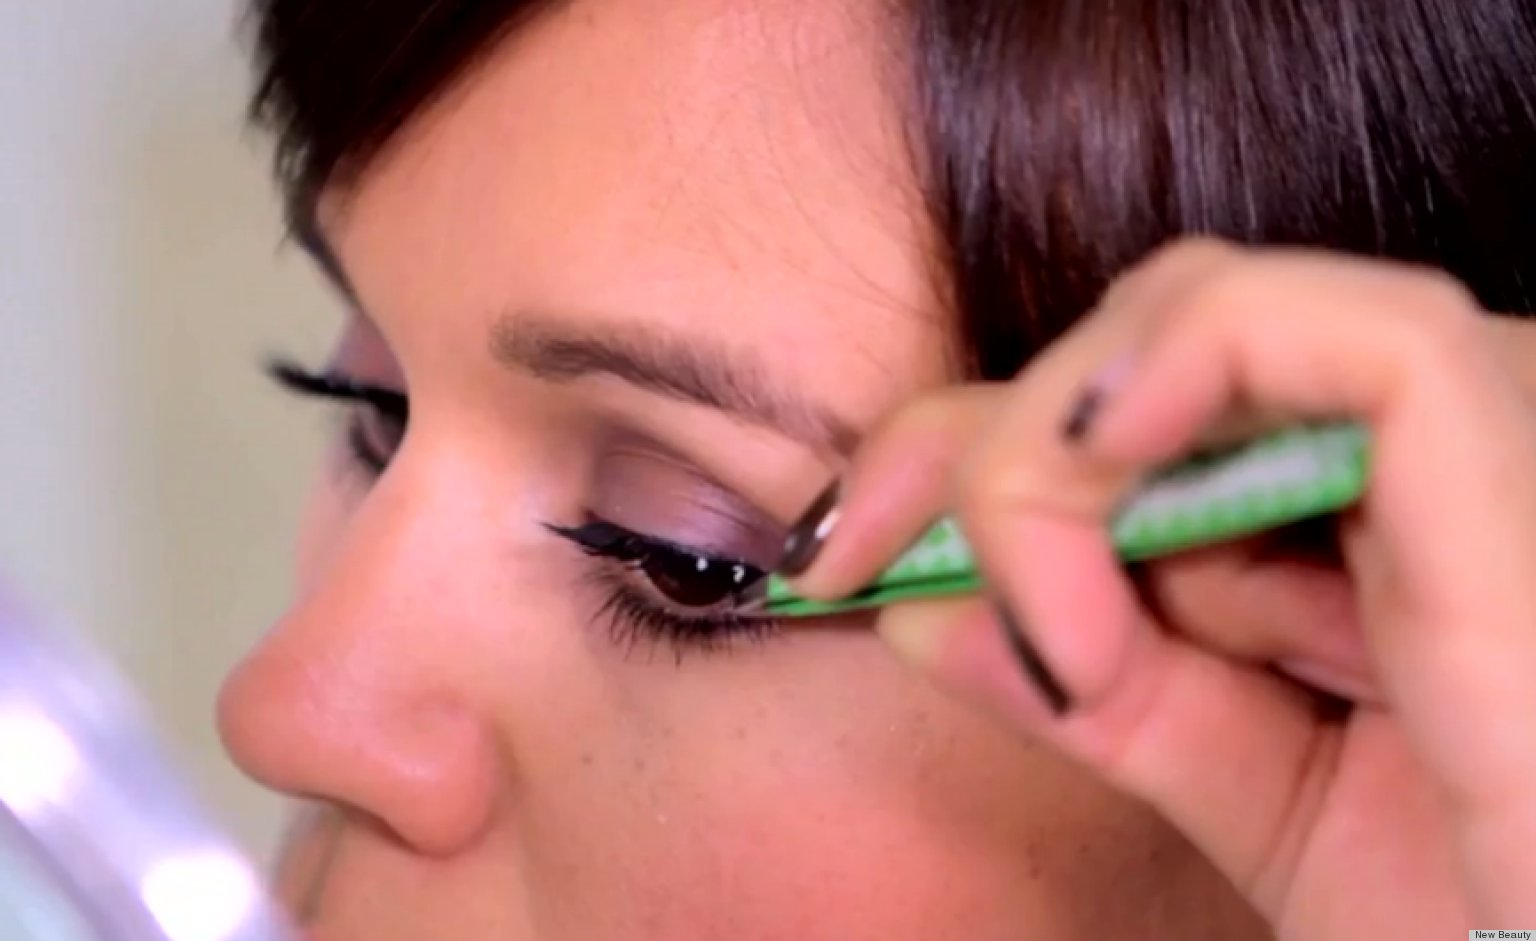 How To Make Fake Eyelashes Look Real (VIDEO) | HuffPost